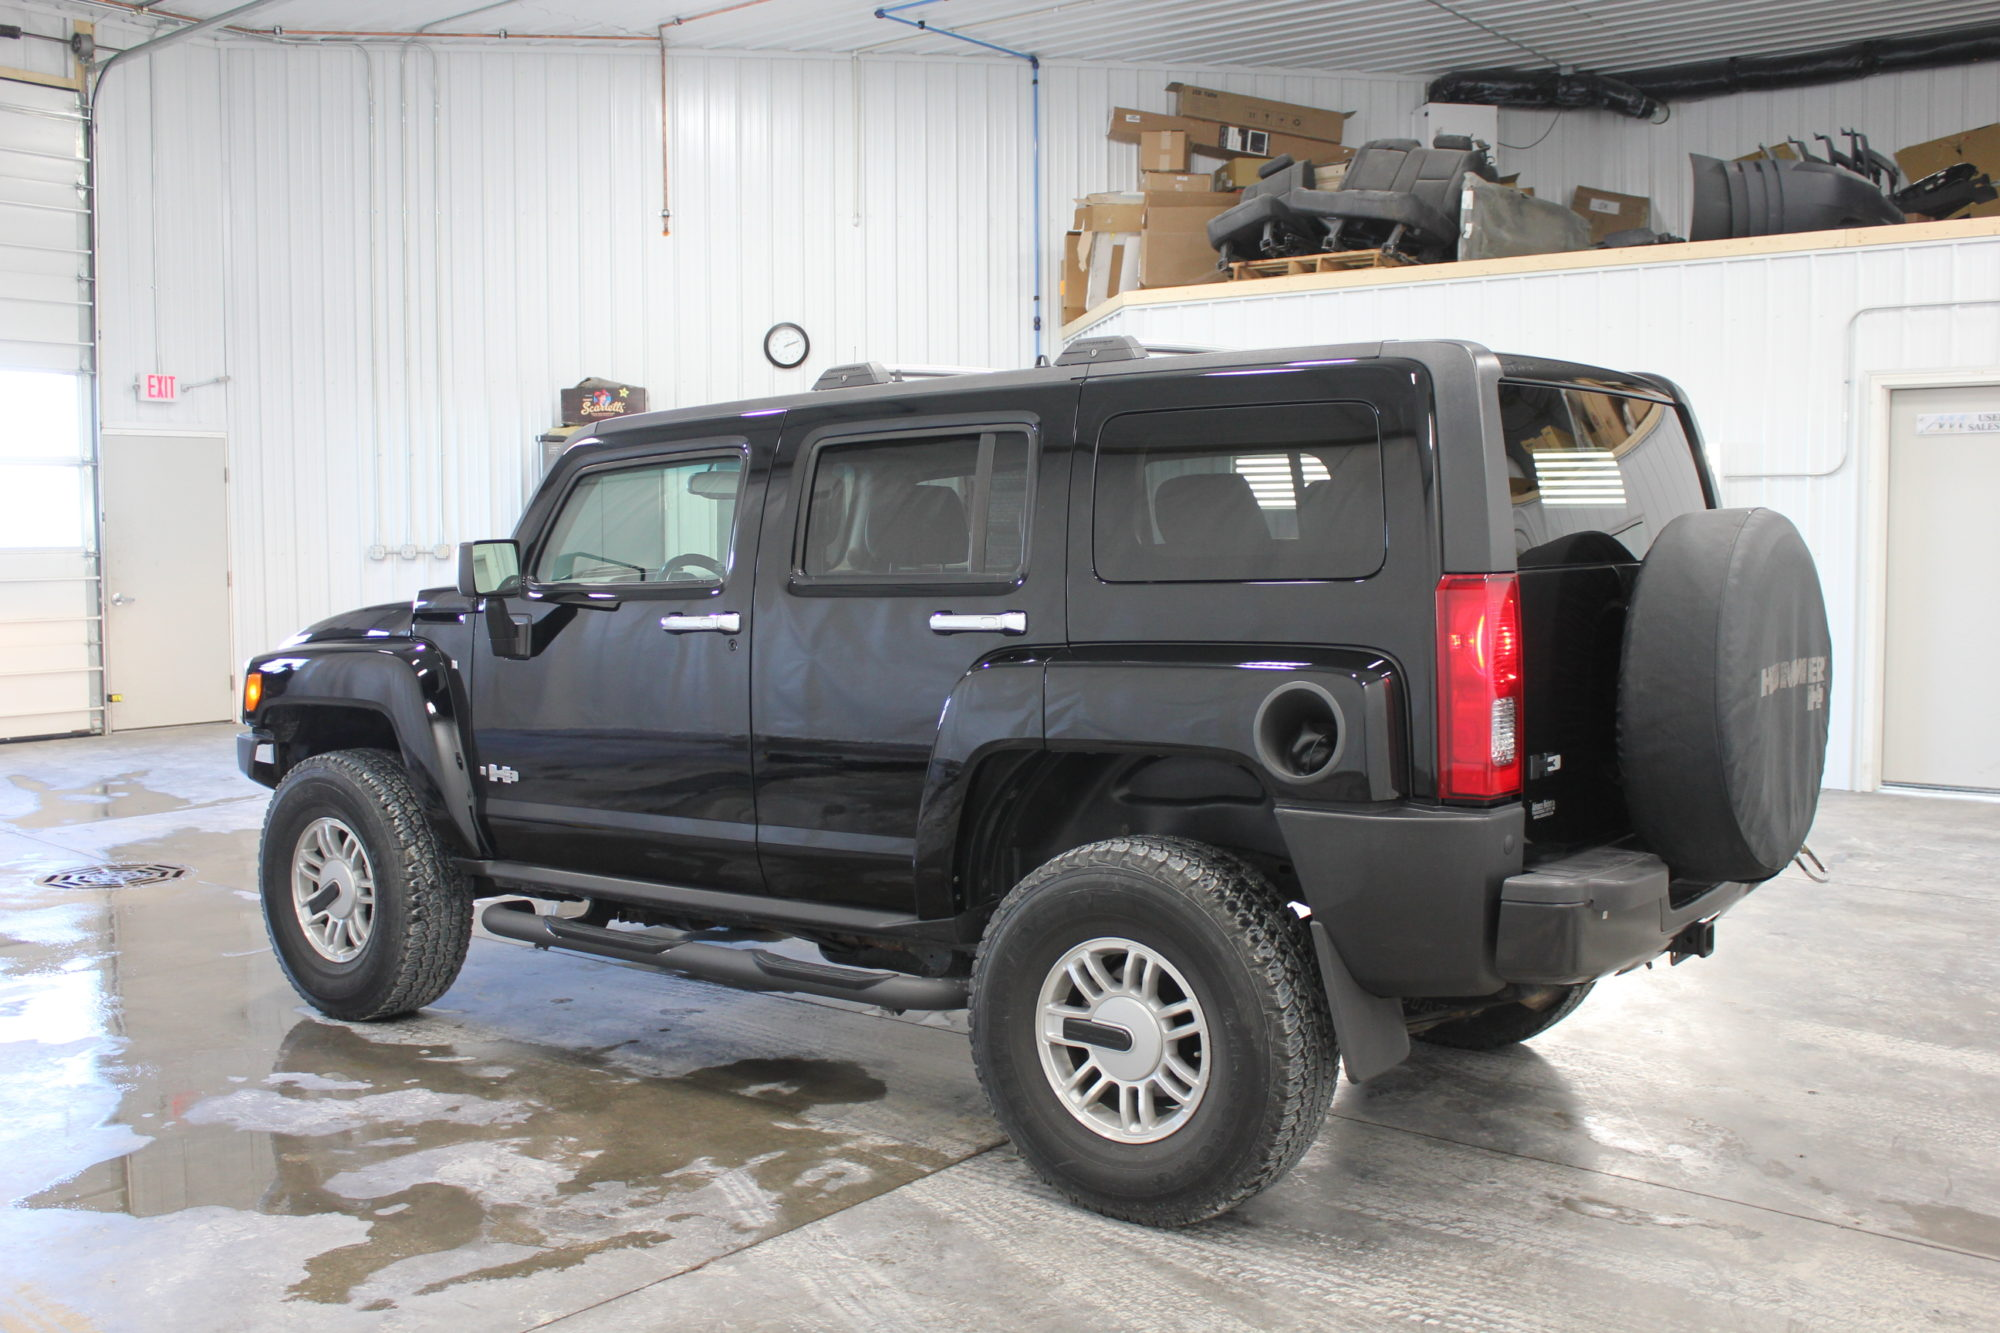 2006 HUMMER H3 65K MILES EXTRA CLEAN 5SP MANUAL MUST SEE